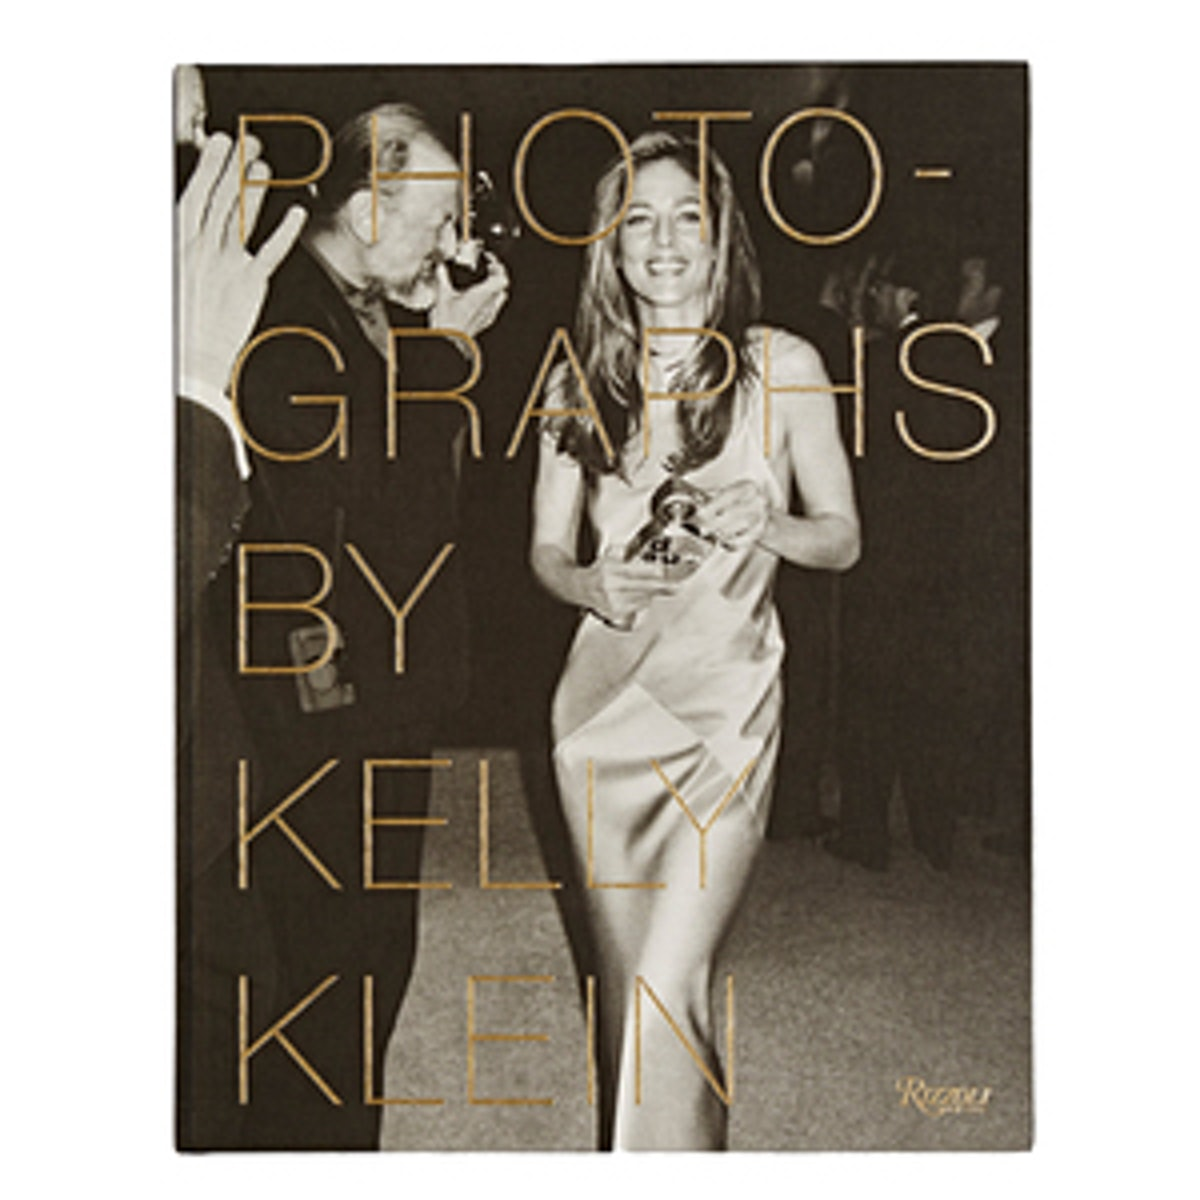 Photographs by Kelly Klein